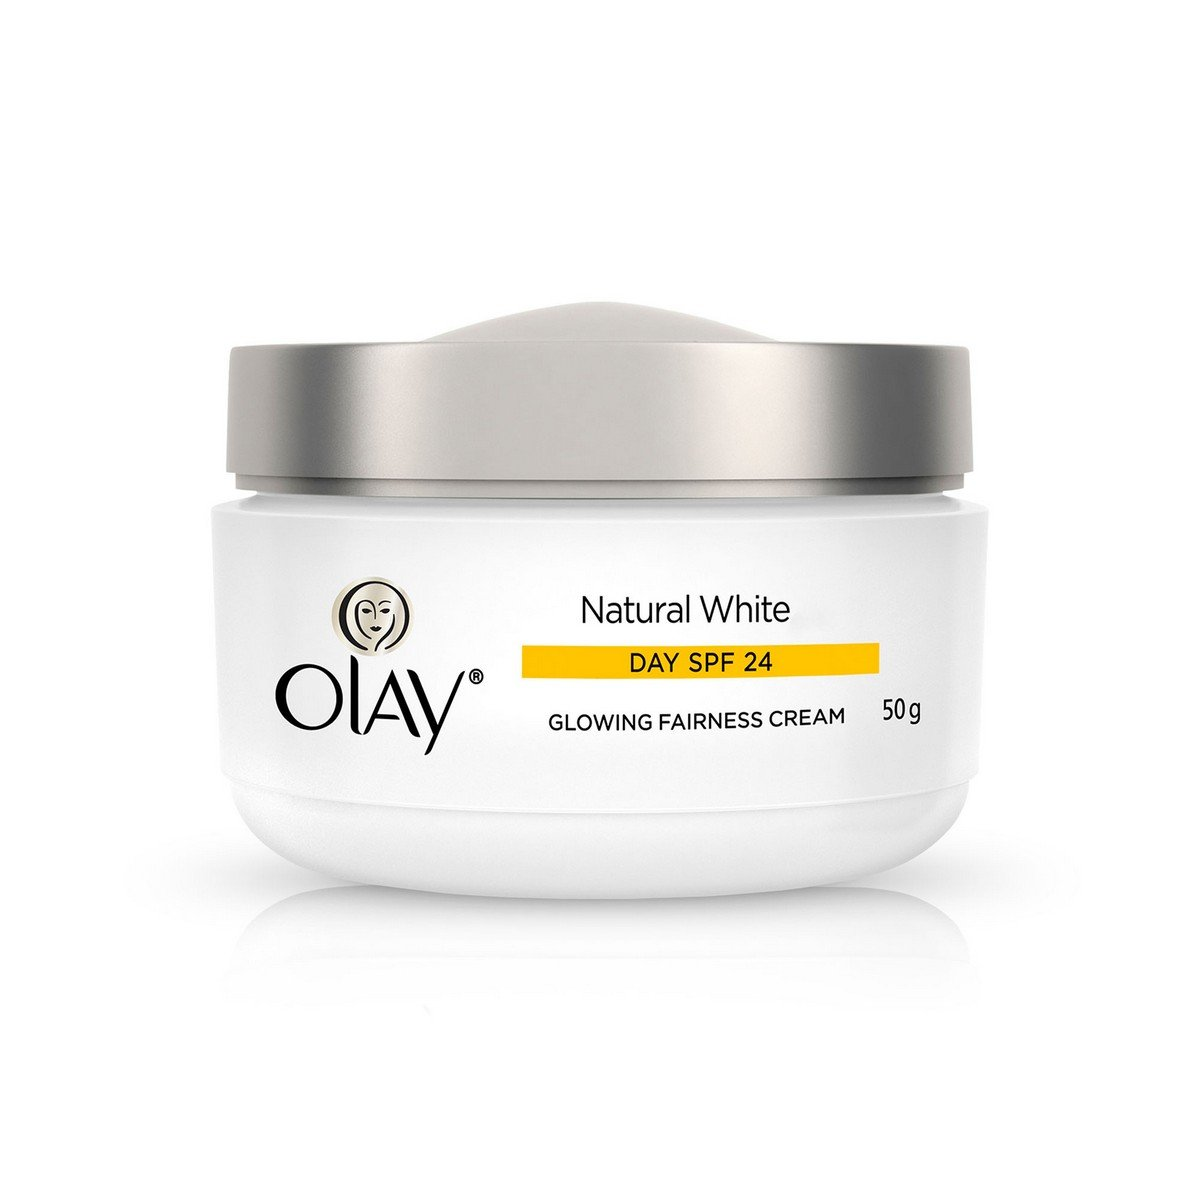 Olay Natural White Glowing Fairness Cream Day Spf 24 50g Daily Glow Krim Beauty